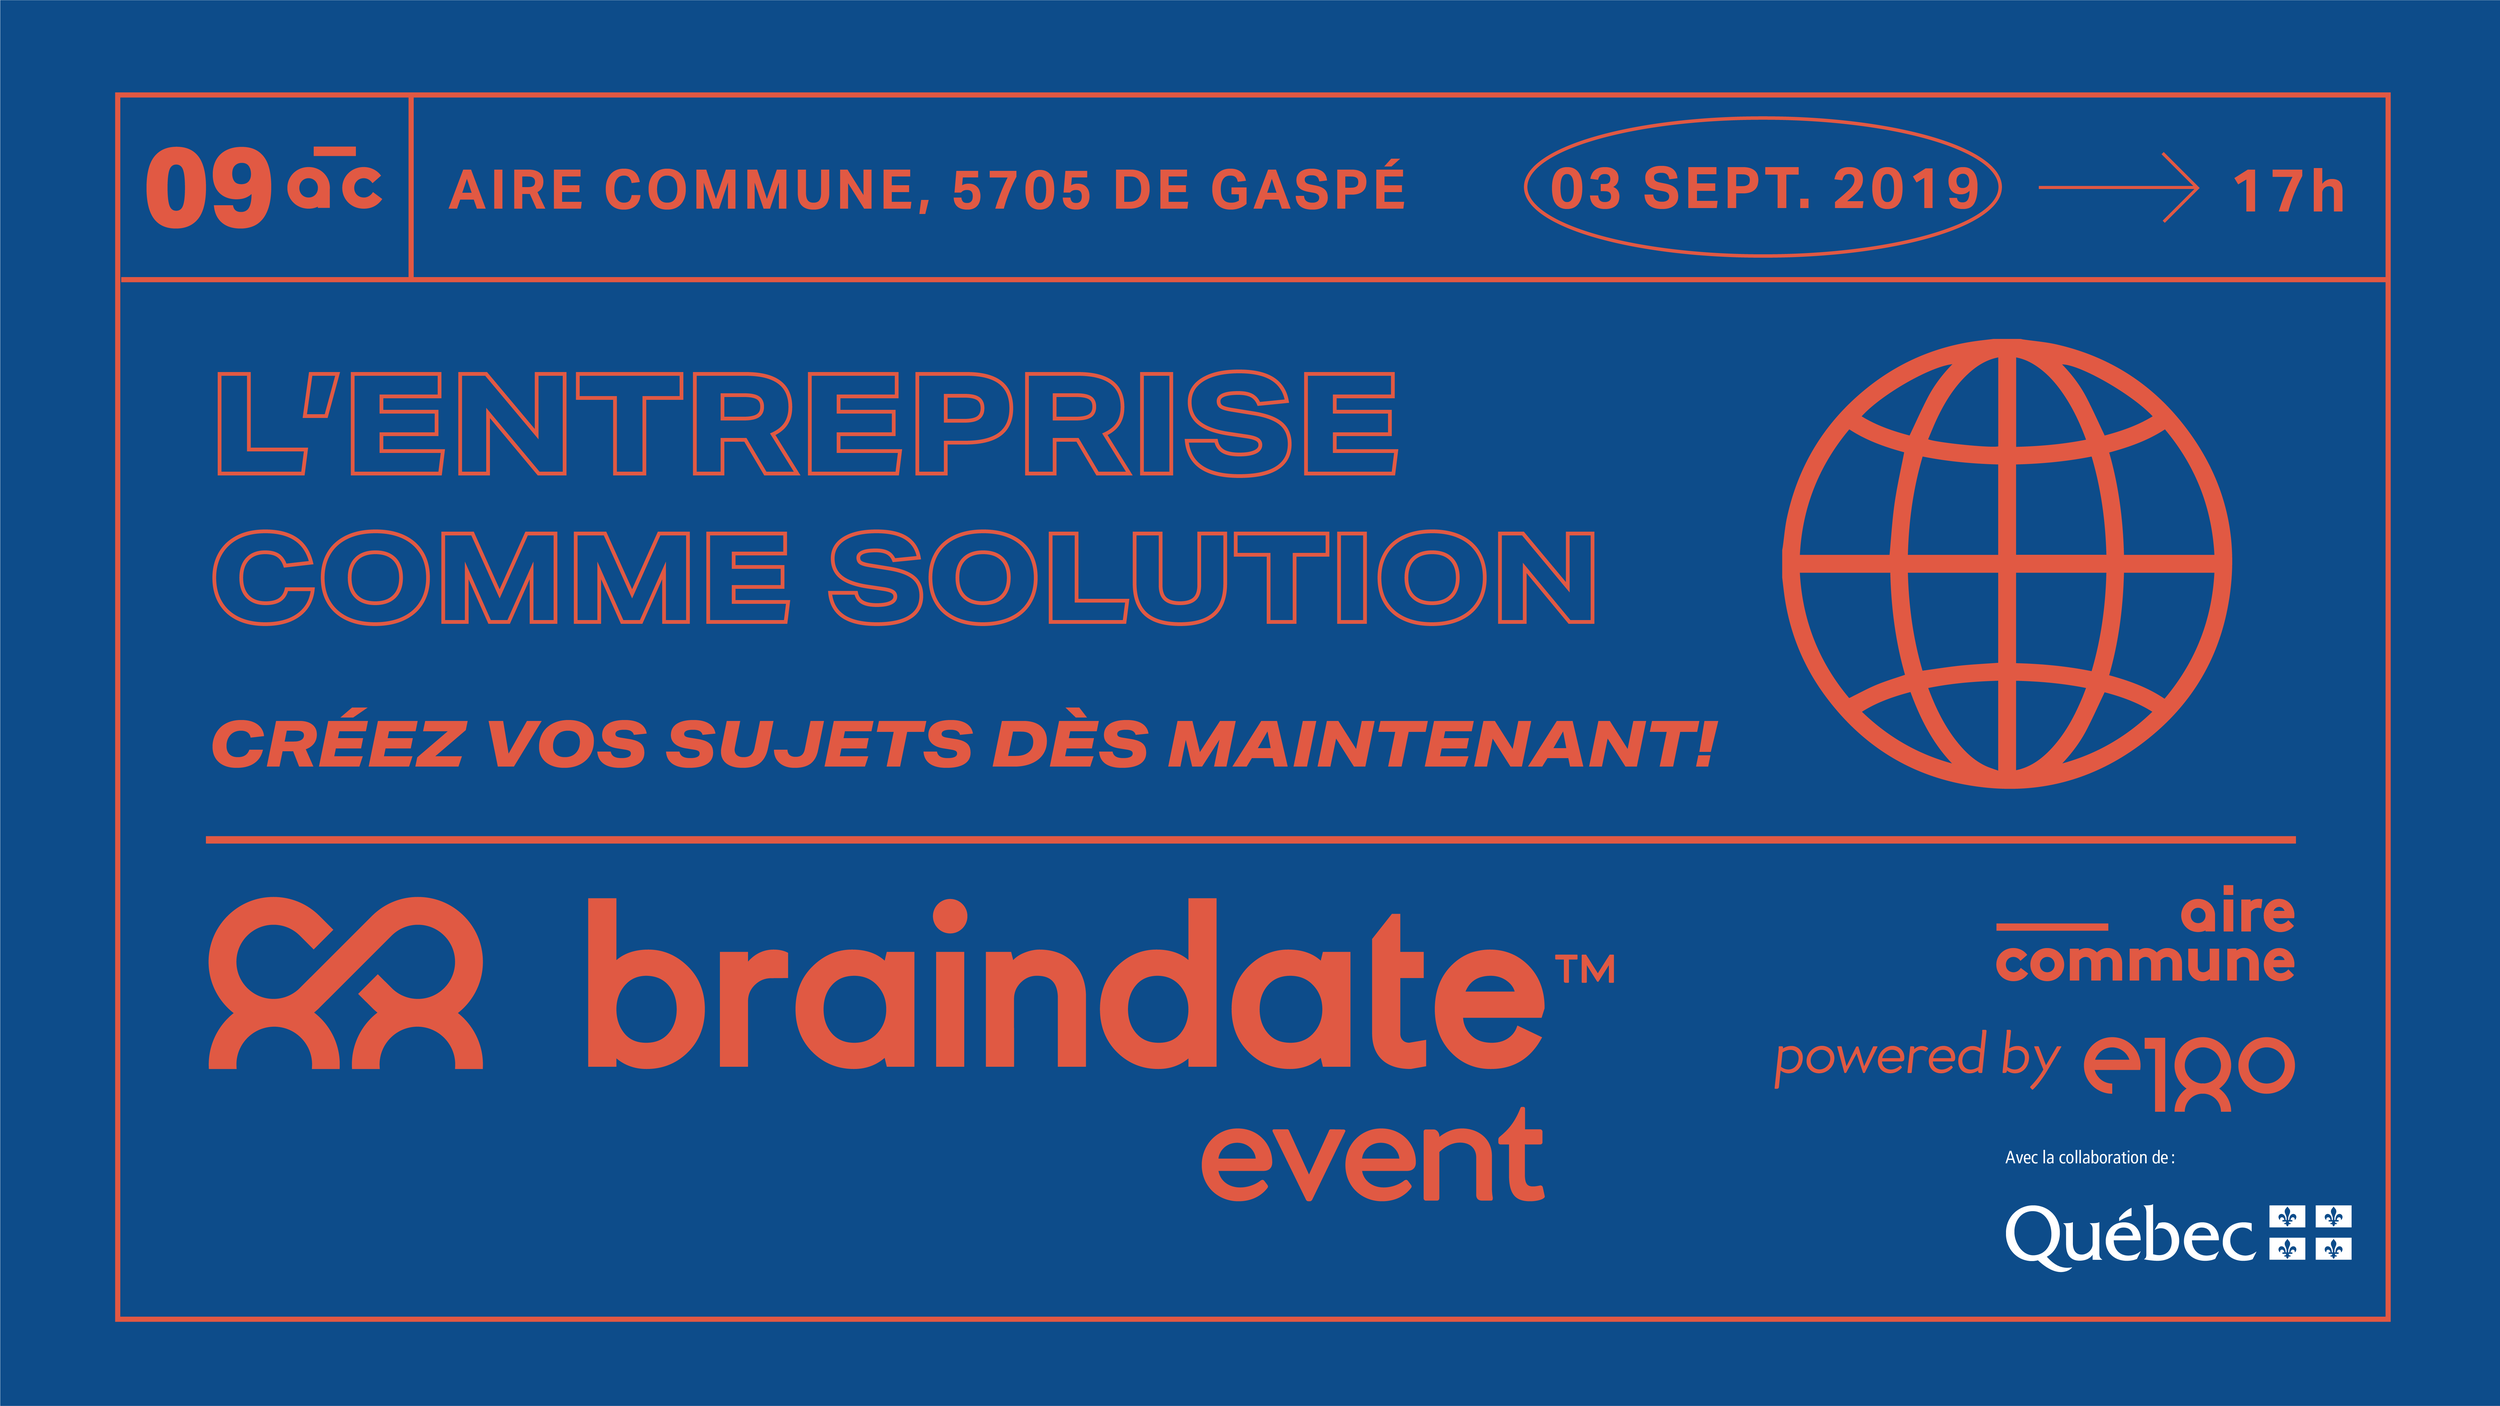 09ac_Events_BRAINDATE_EVENTBANNER.png